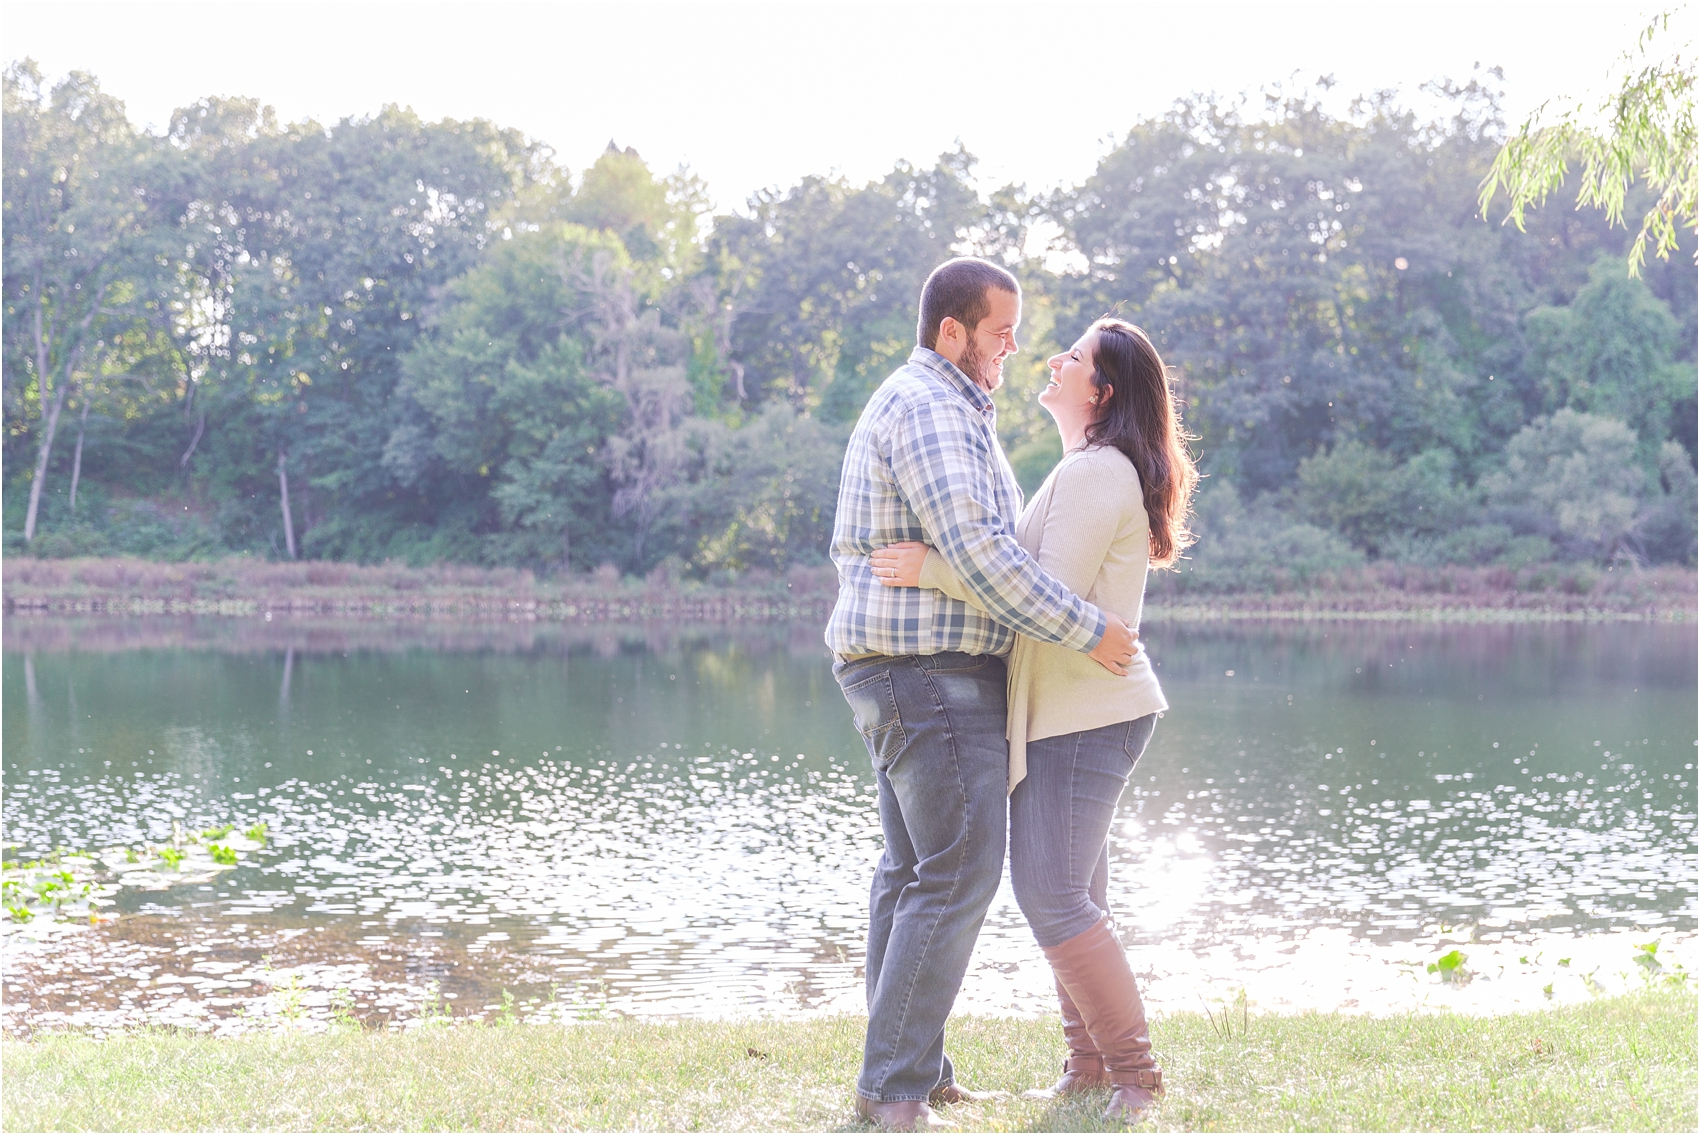 candid-romantic-summer-engagement-photos-at-hidden-lake-gardens-and-black-fire-winery-in-tipton-mi-by-courtney-carolyn-photography_0024.jpg